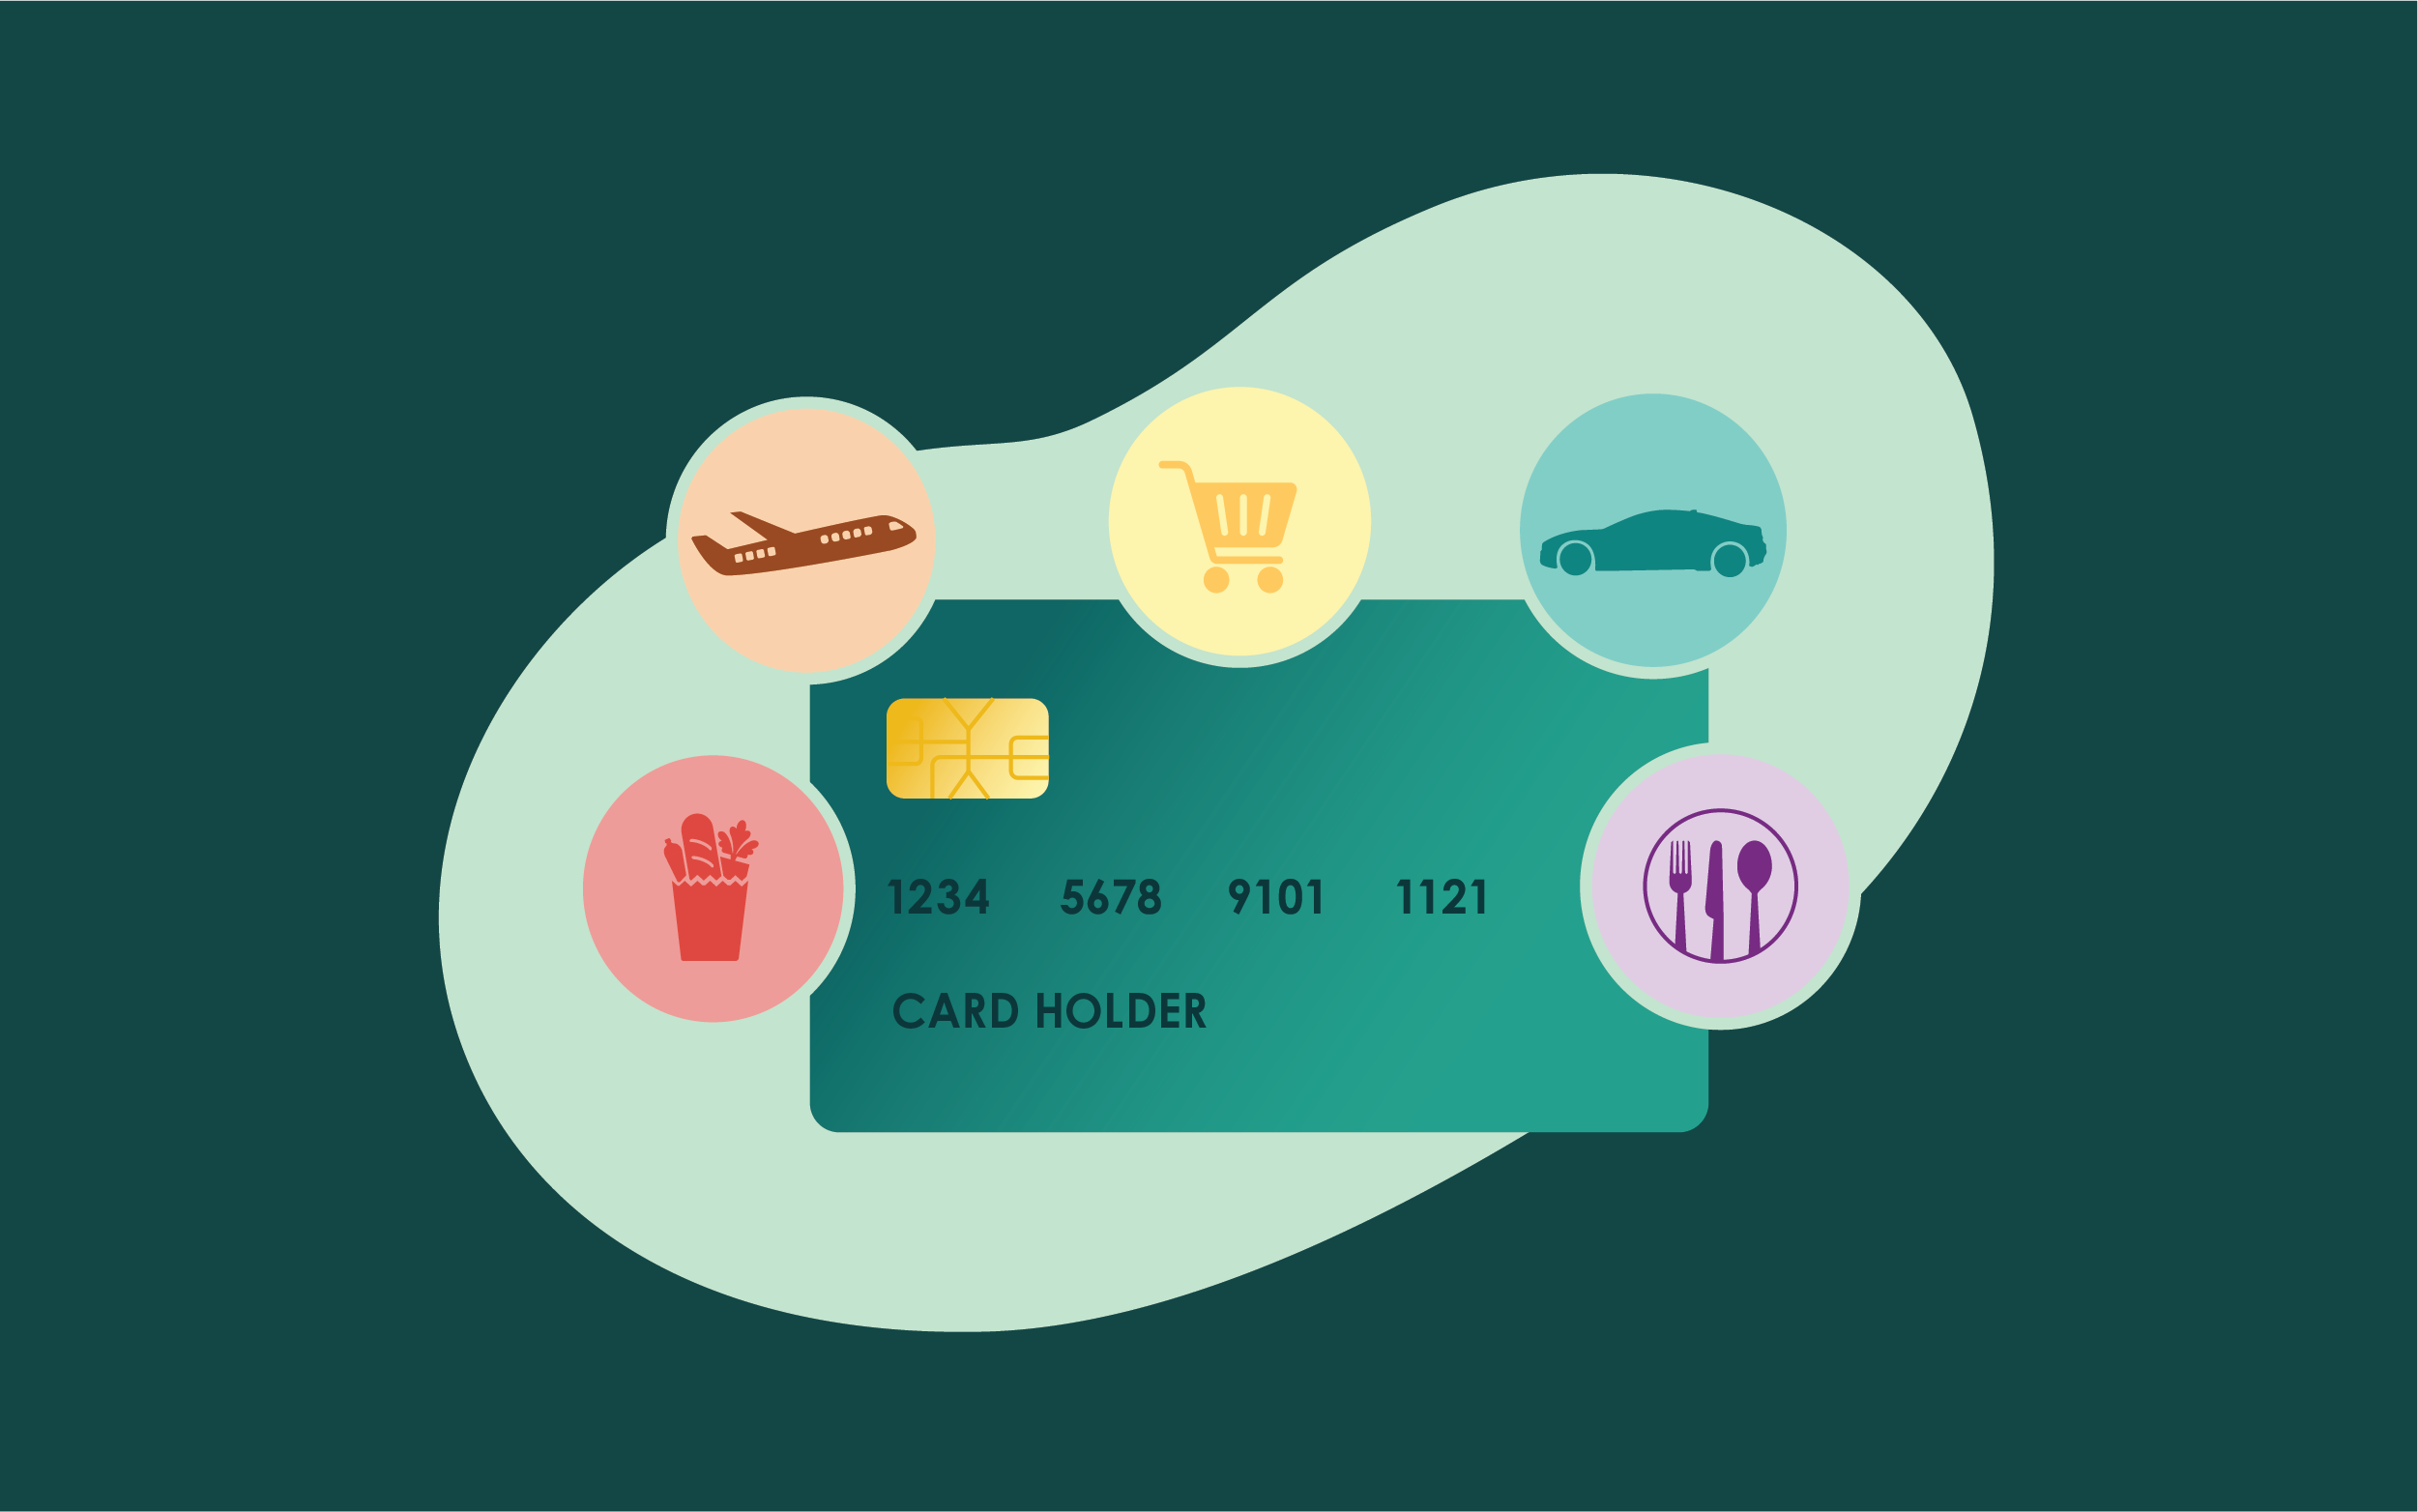 Credit card with surrounding icons including a grocery bag, airplane, shopping card, car, and fork and knife